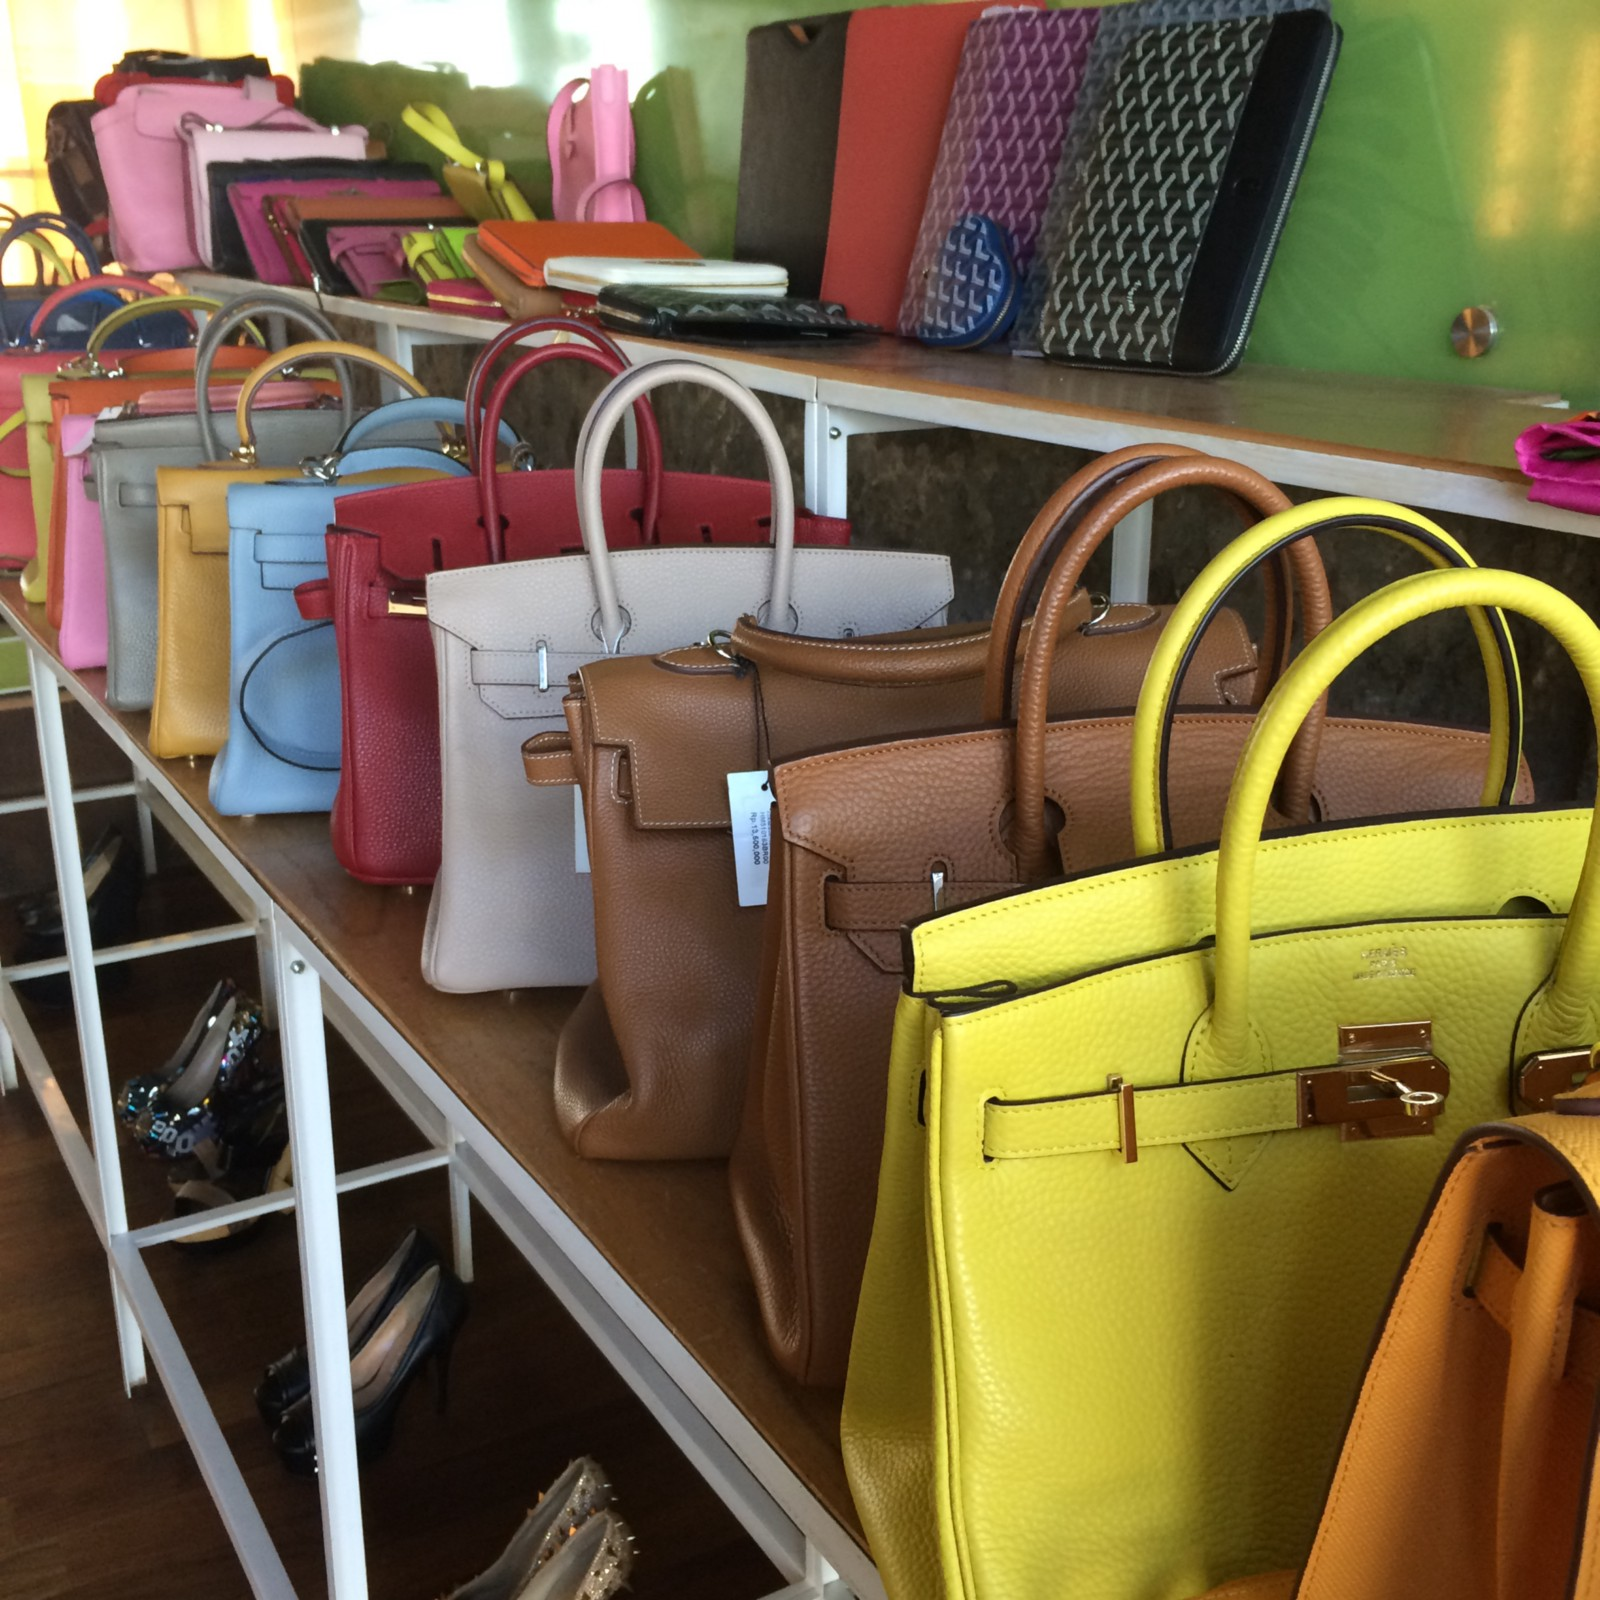 95fb78355002 The Truth About Counterfeit Luxury Handbags – Becca Risa Luna – Medium